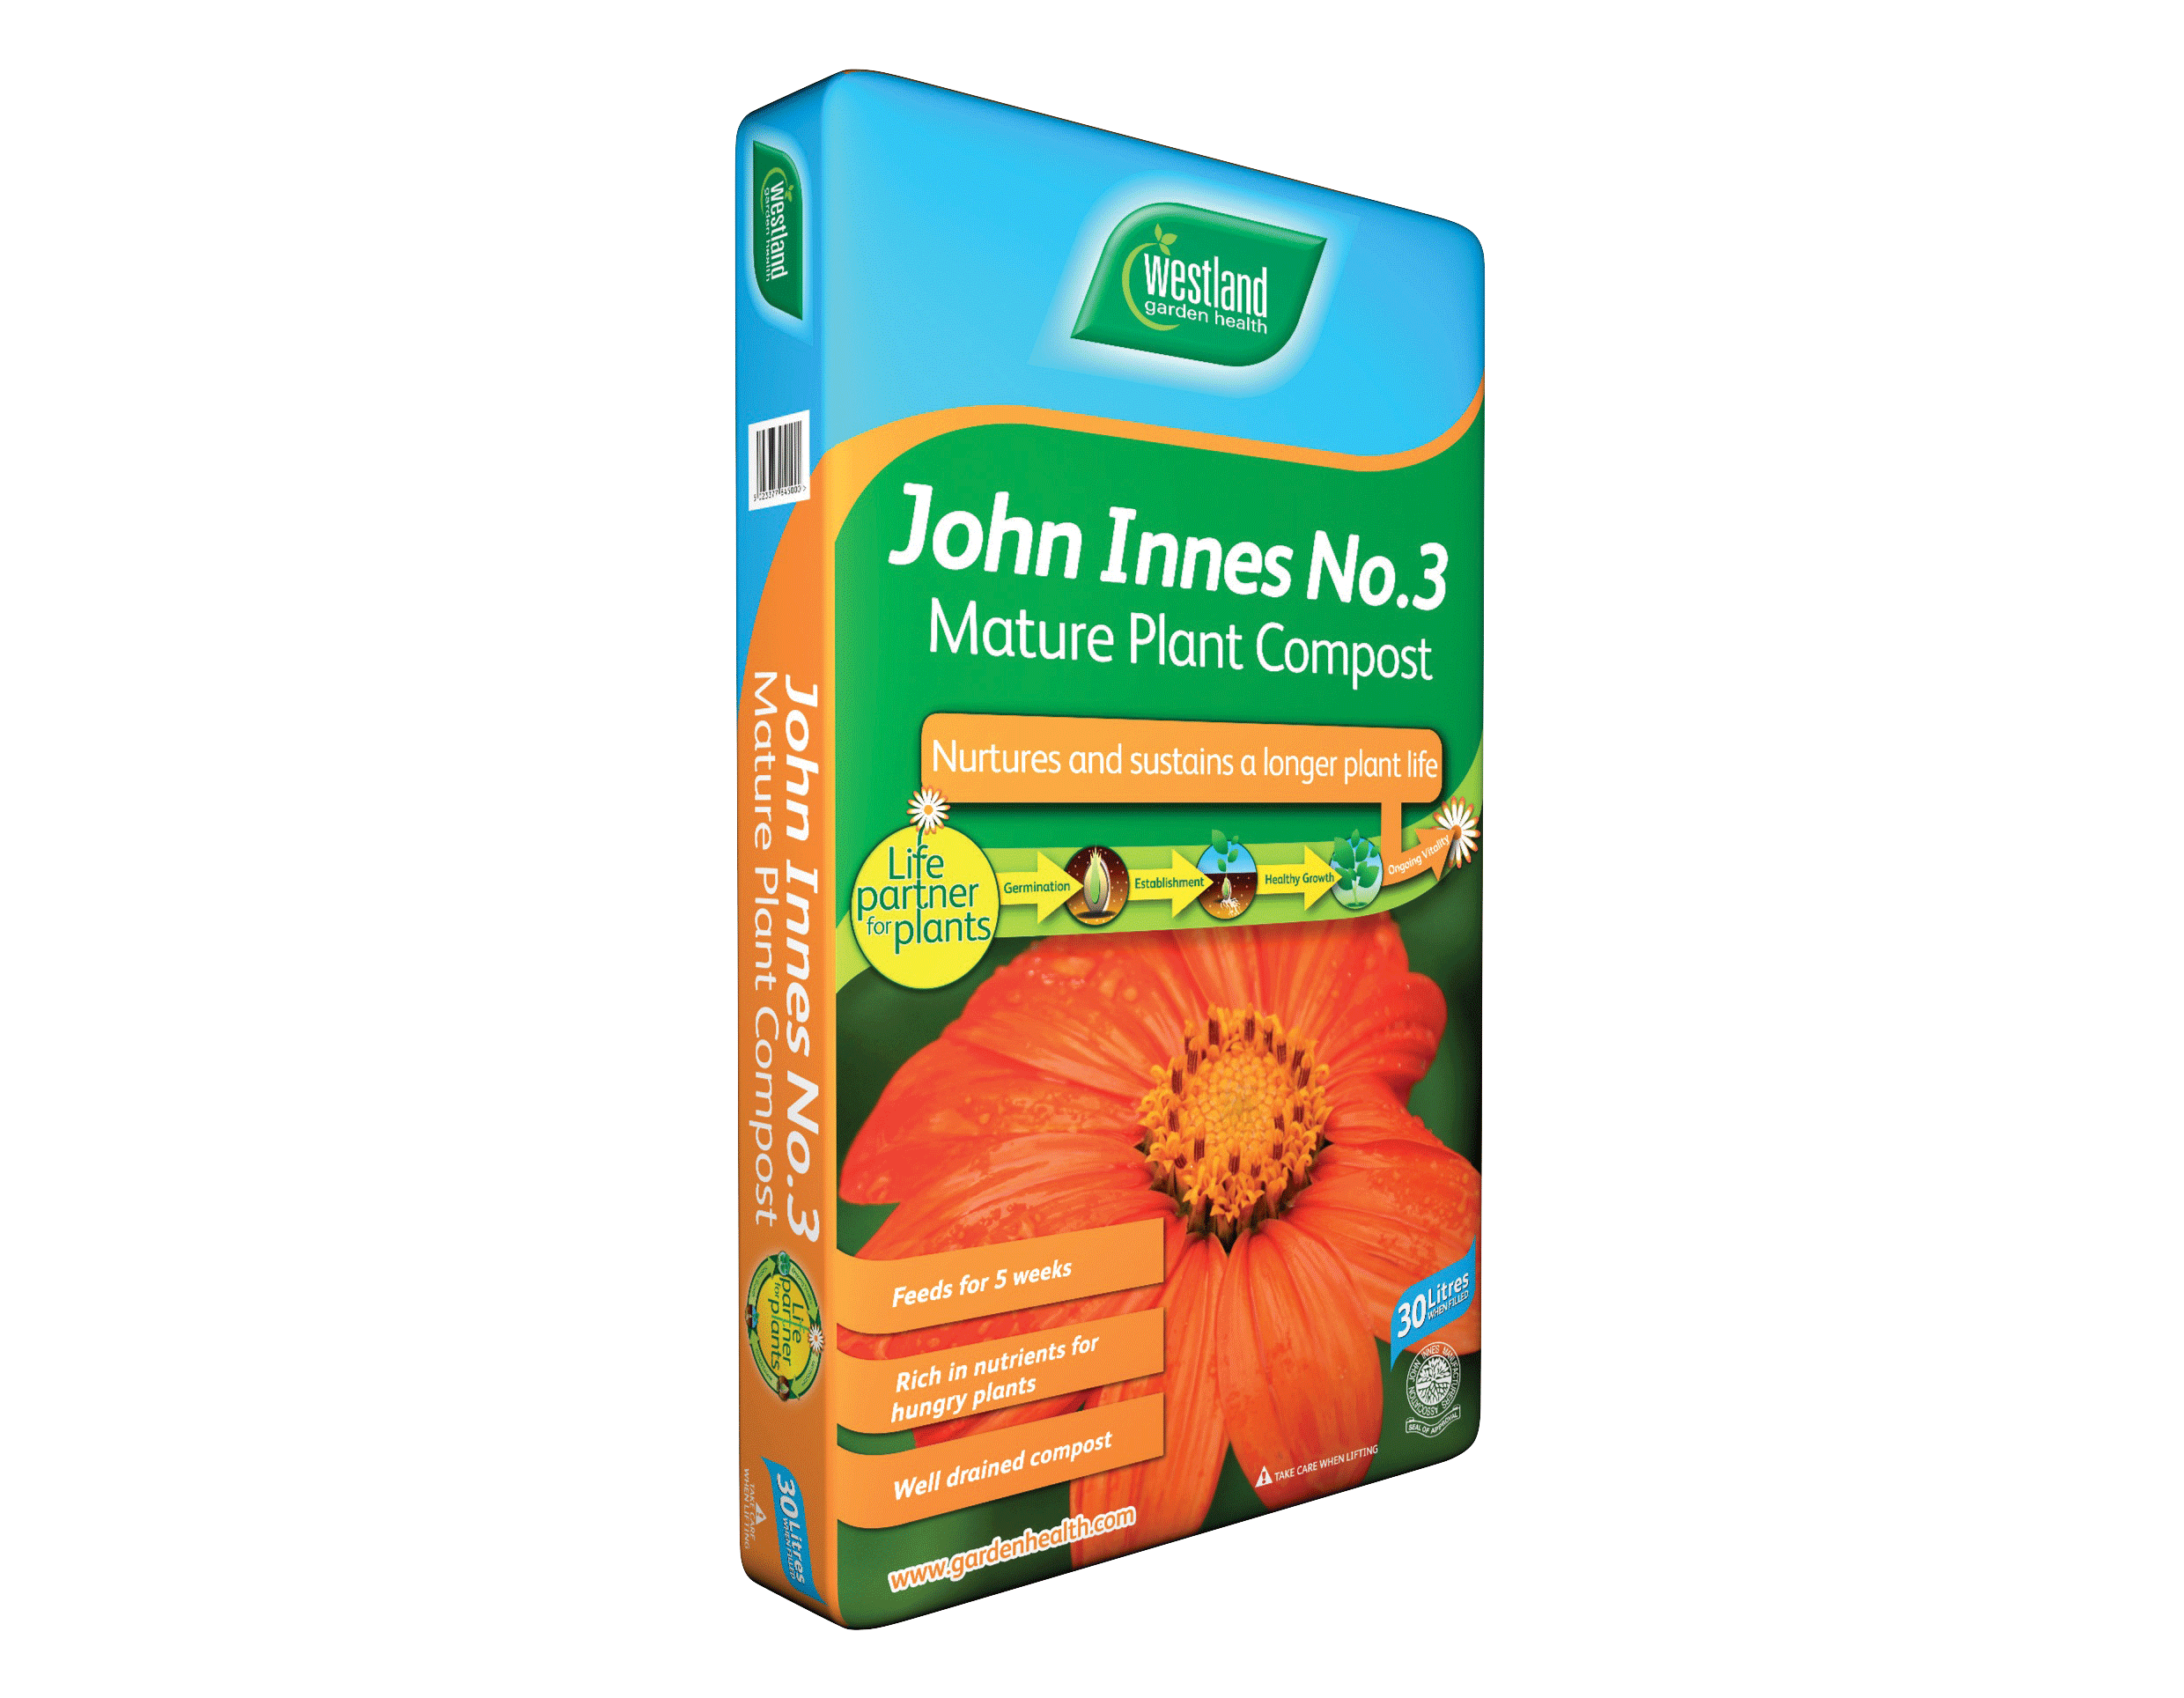 Westland John Innes Seed No. 3 Mature Plant Compost